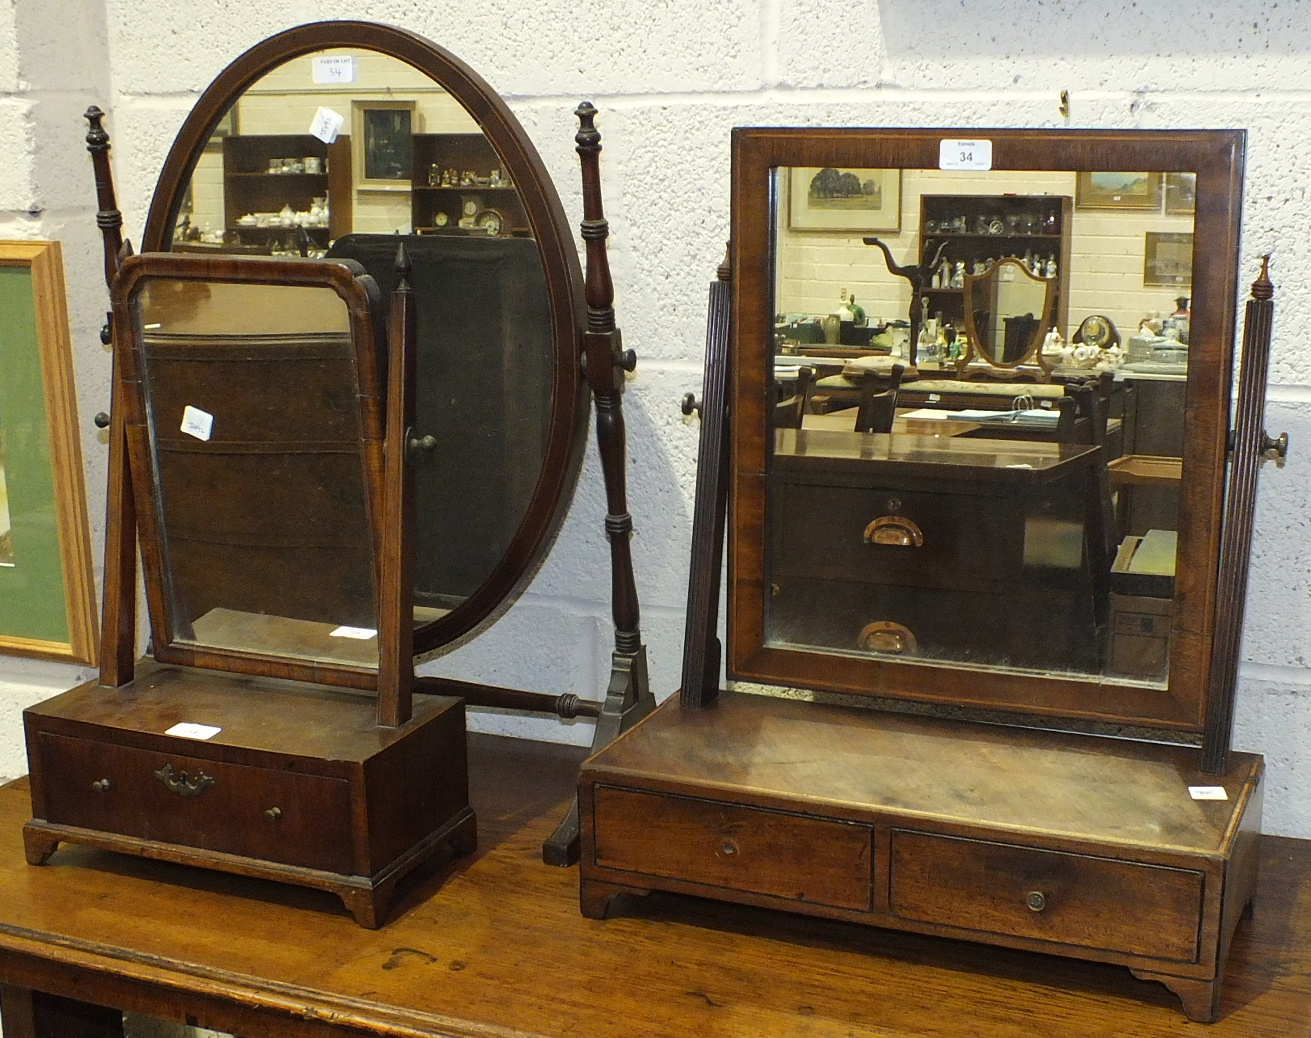 Lot 34 - A small antique walnut dressing table mirror, the rectangular plate above a base drawer, on